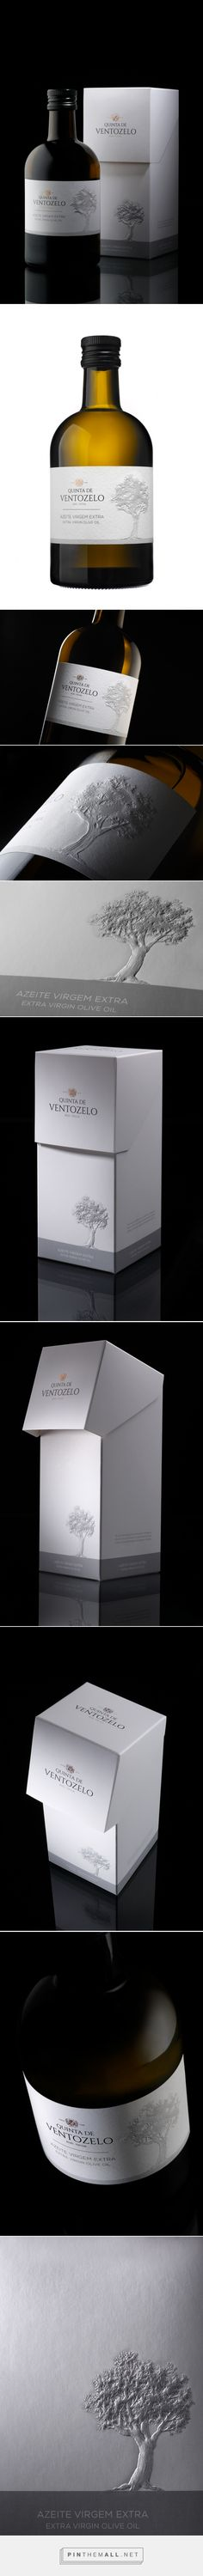 Quinta de Ventozelo Olive Oil - Packaging of the World - Creative Package Design Gallery - http://www.packagingoftheworld.com/2016/10/quinta-de-ventozelo-olive-oil.html